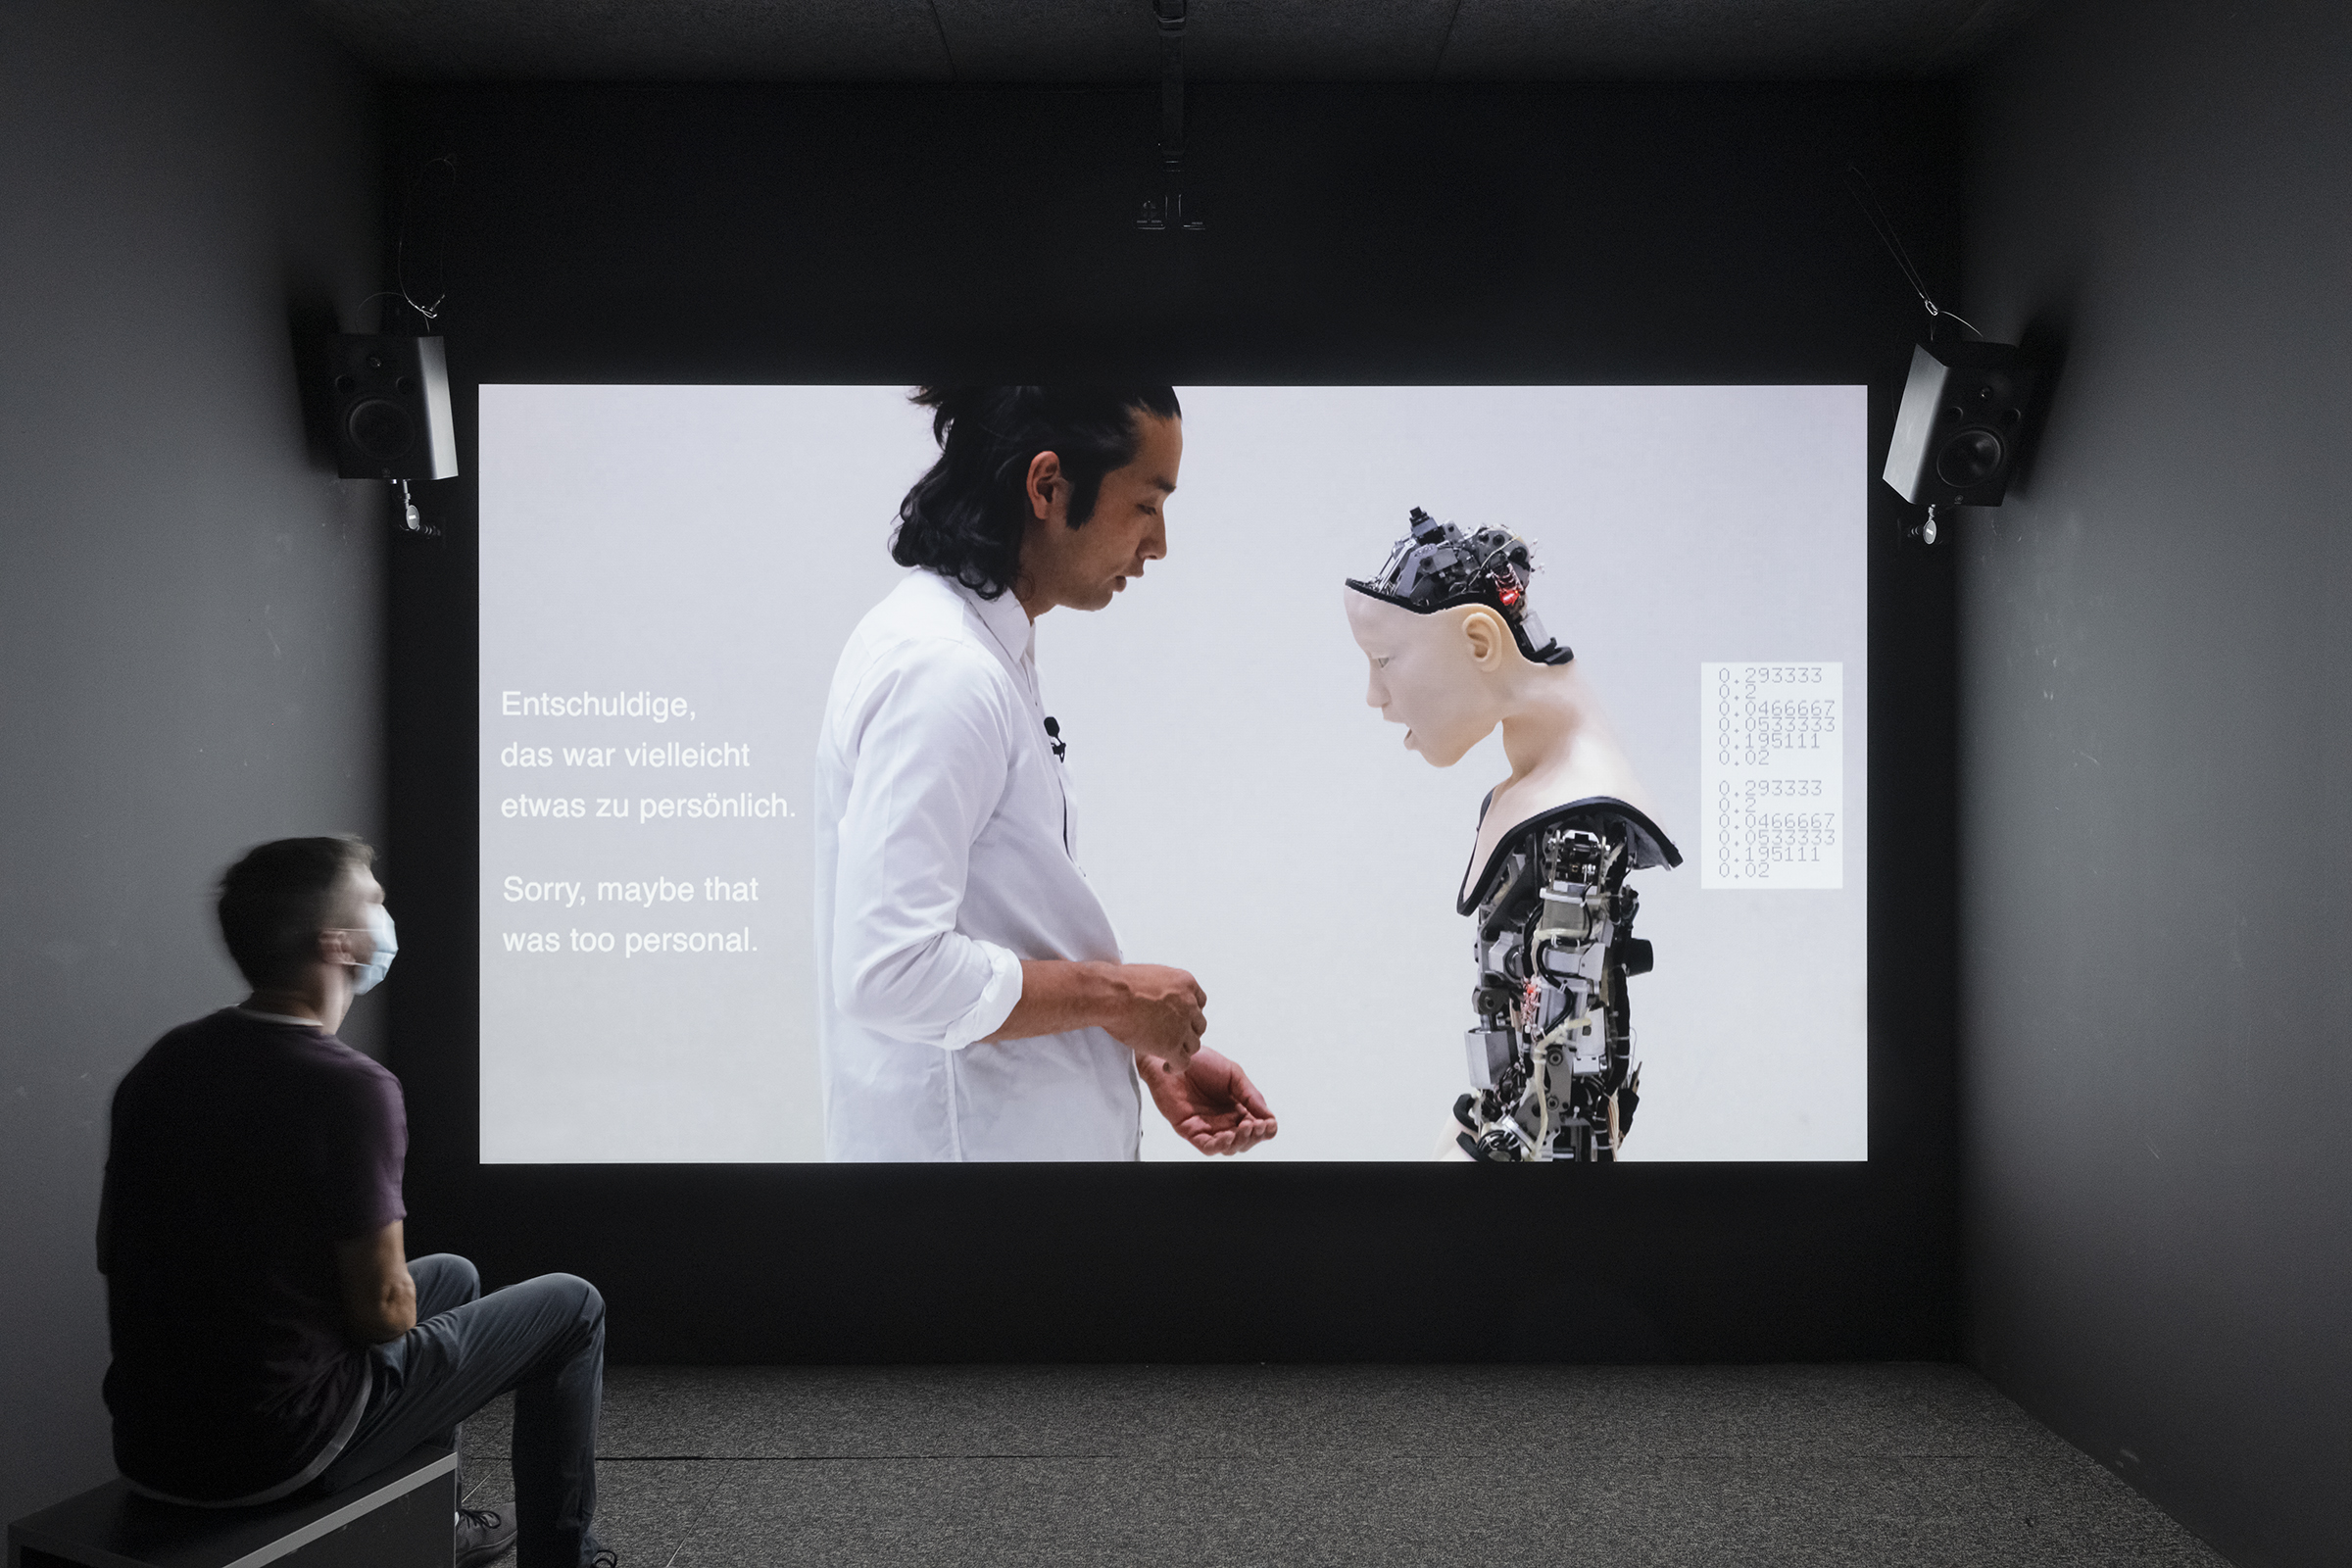 """Real Feelings, emotion and technology"", HeK (House of electronic Arts Basel), Swiss"